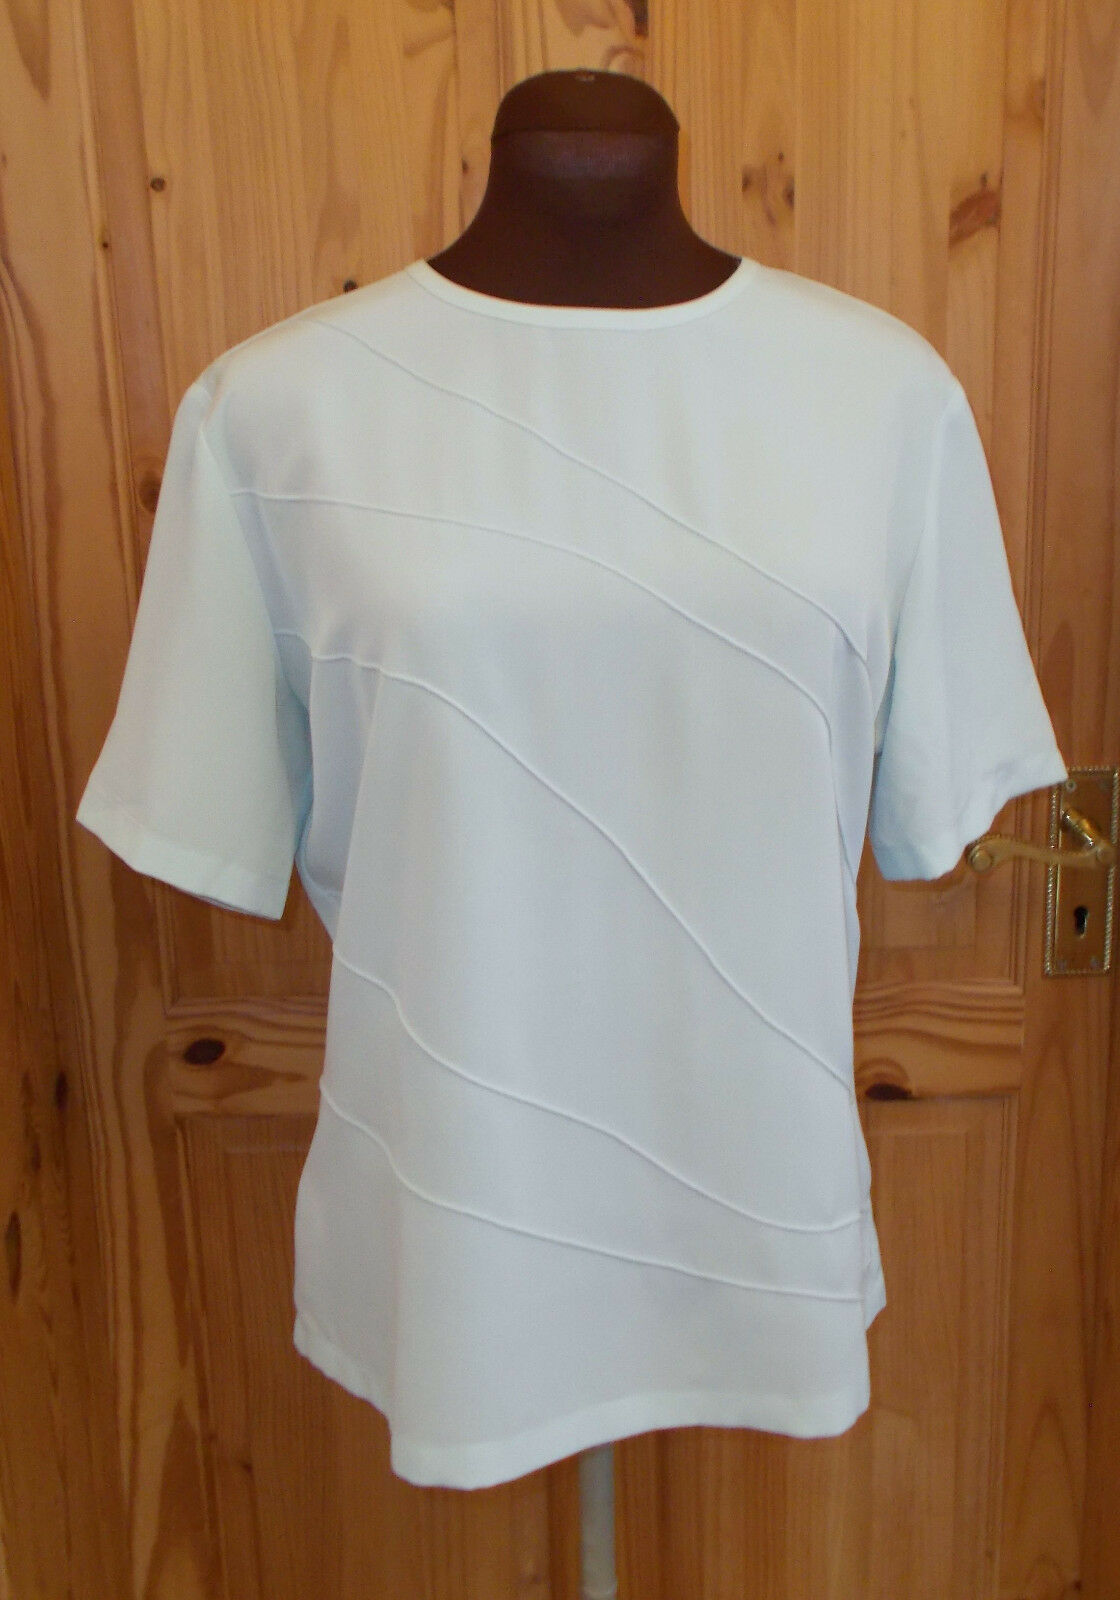 COUNTRY CASUALS duckegg pale aqua Blau-Grün short sleeve tunic blouse top 12 40